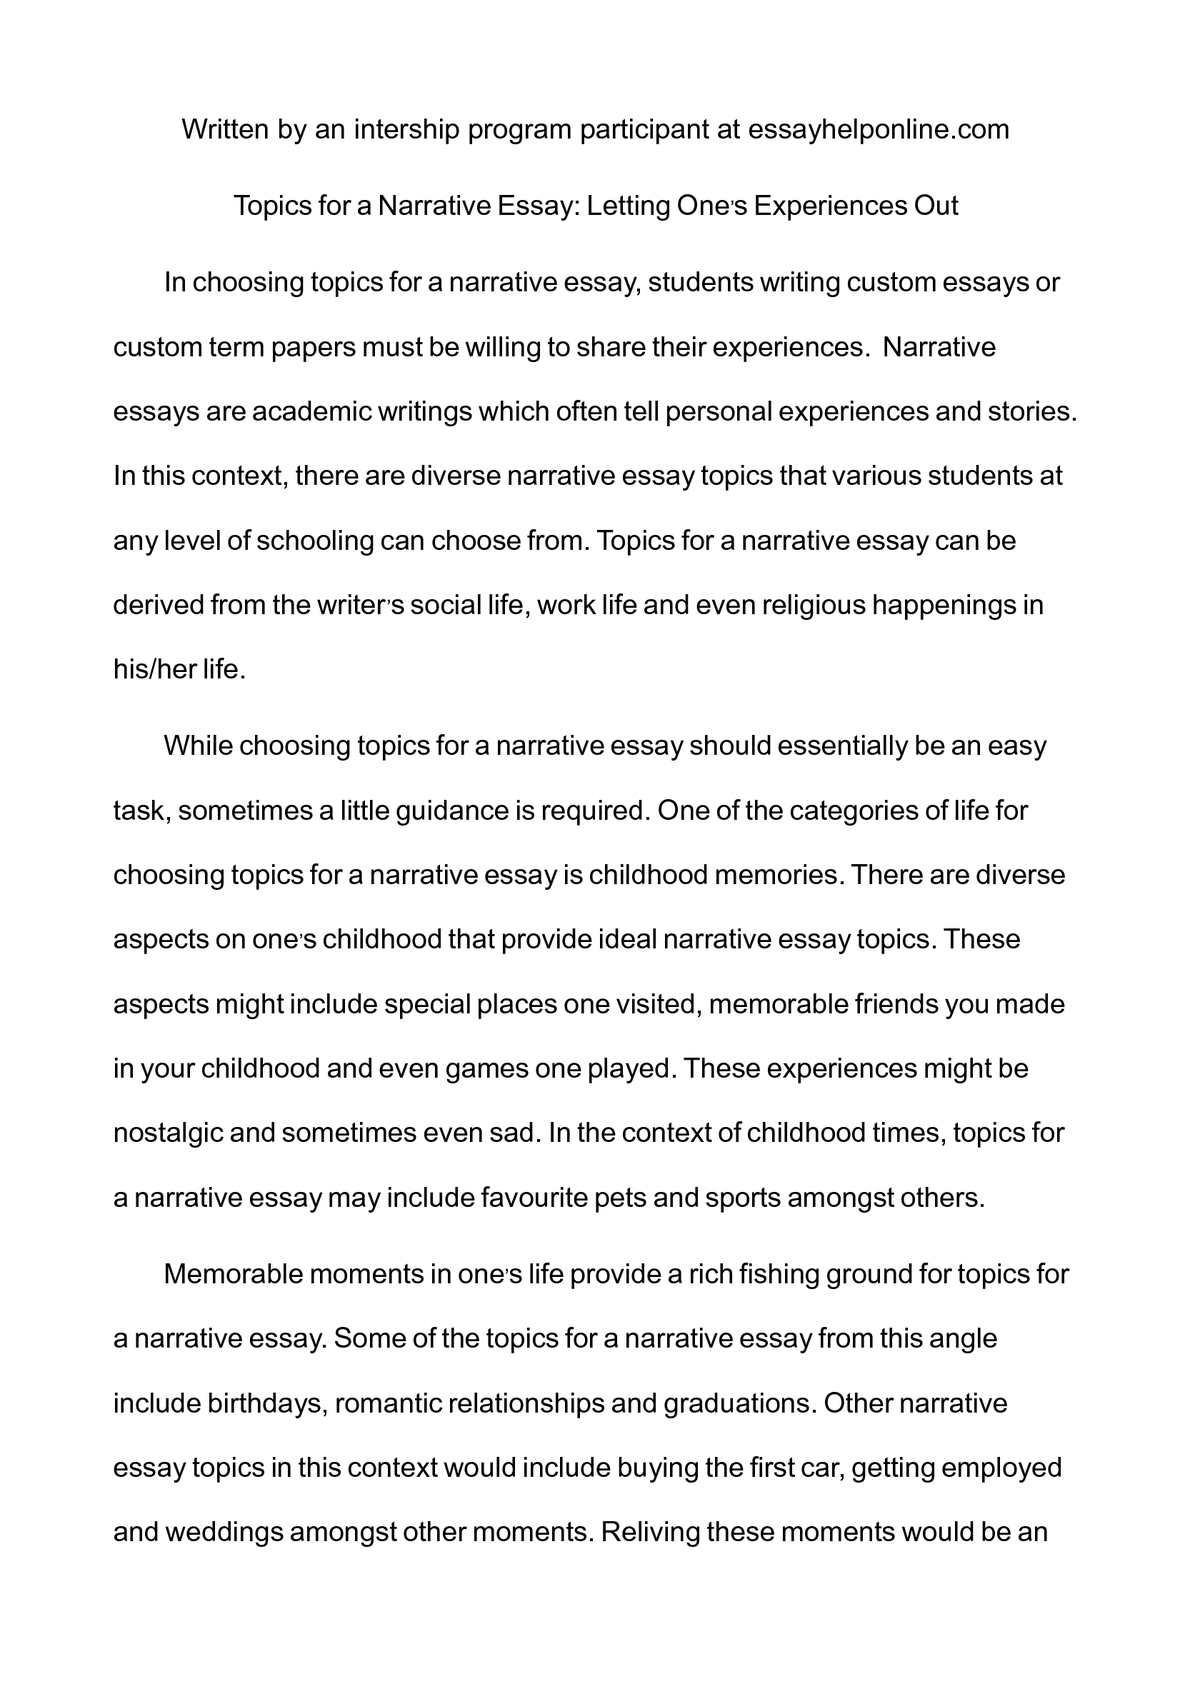 002 Topics For Narrative Essay Example Imposing A Essays College Students 3 Full